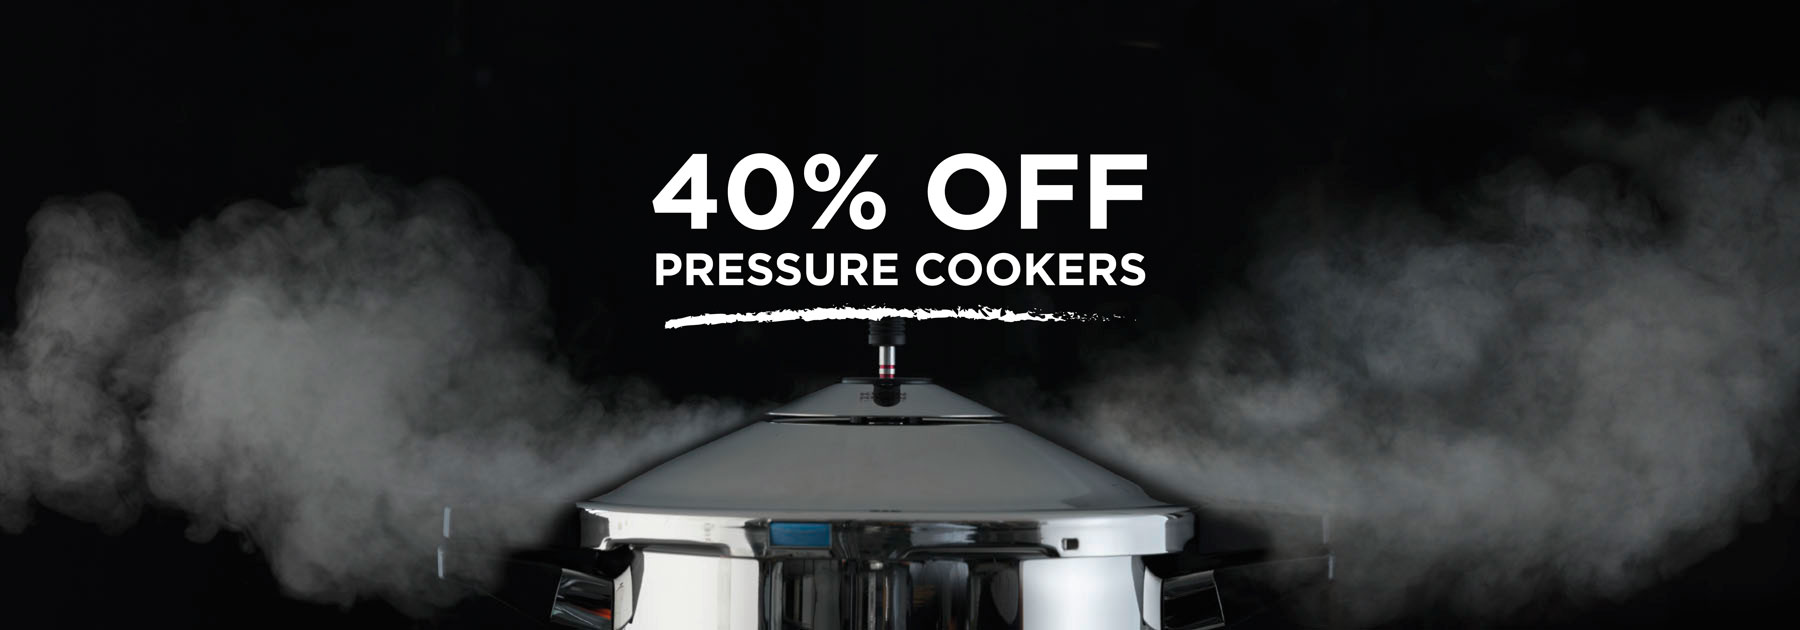 Pressure Cookers, Inox, Swiss made, black Friday, Fast, Offers